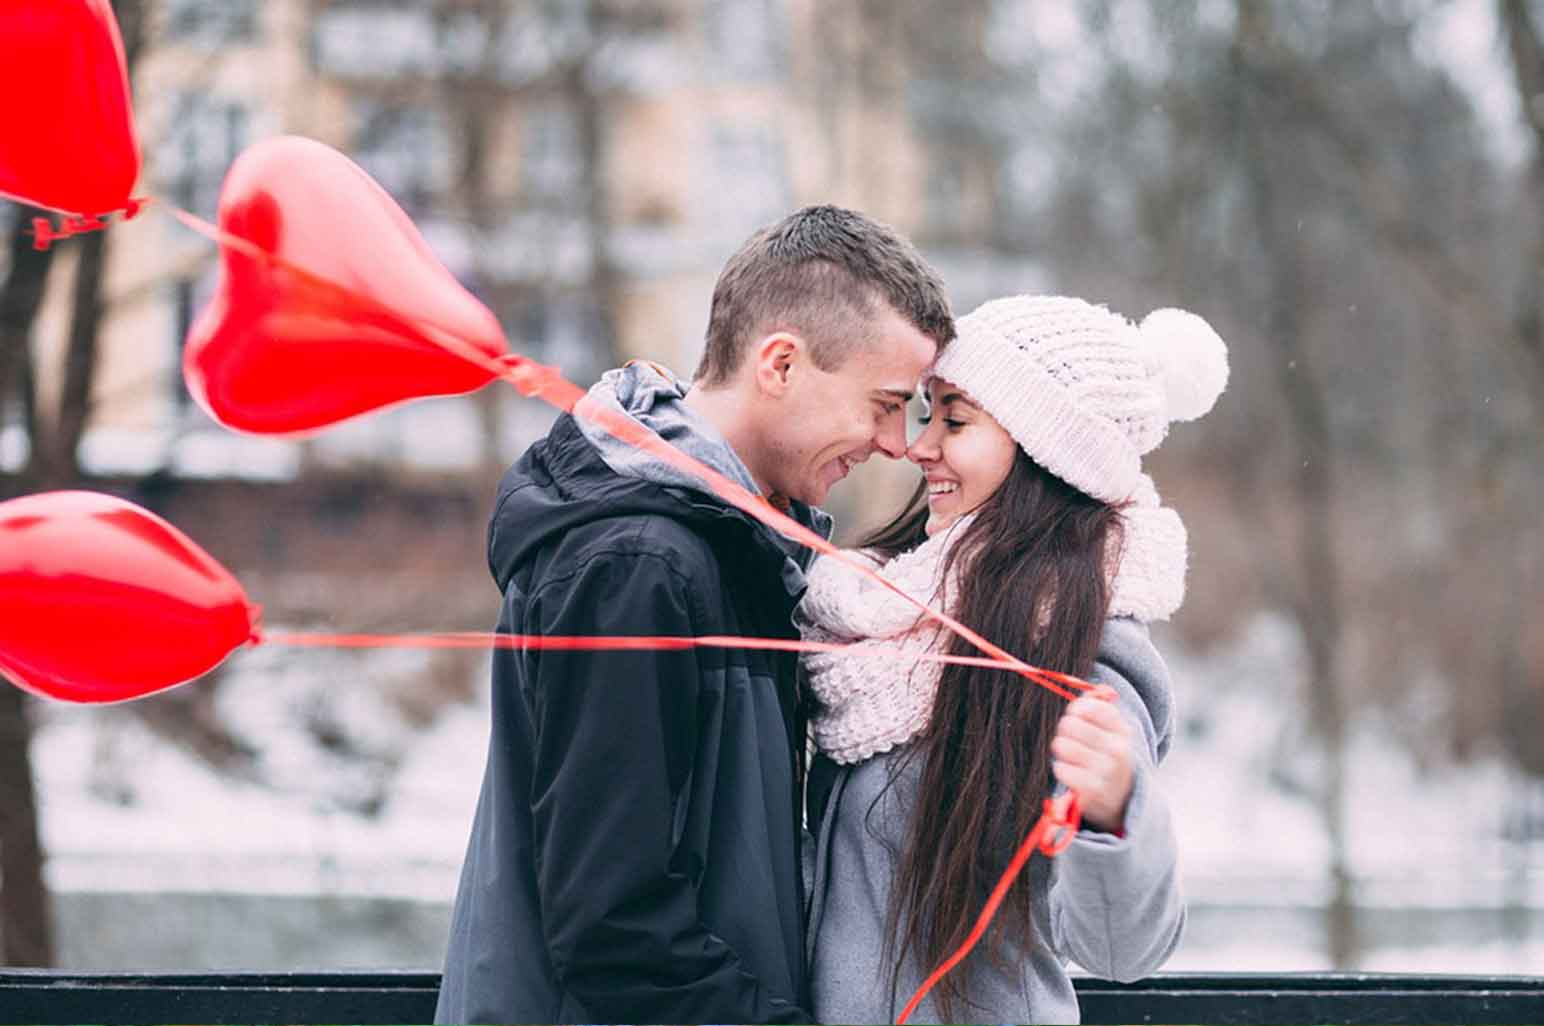 Unique Ways to Let the Woman in Your Life Know You Care